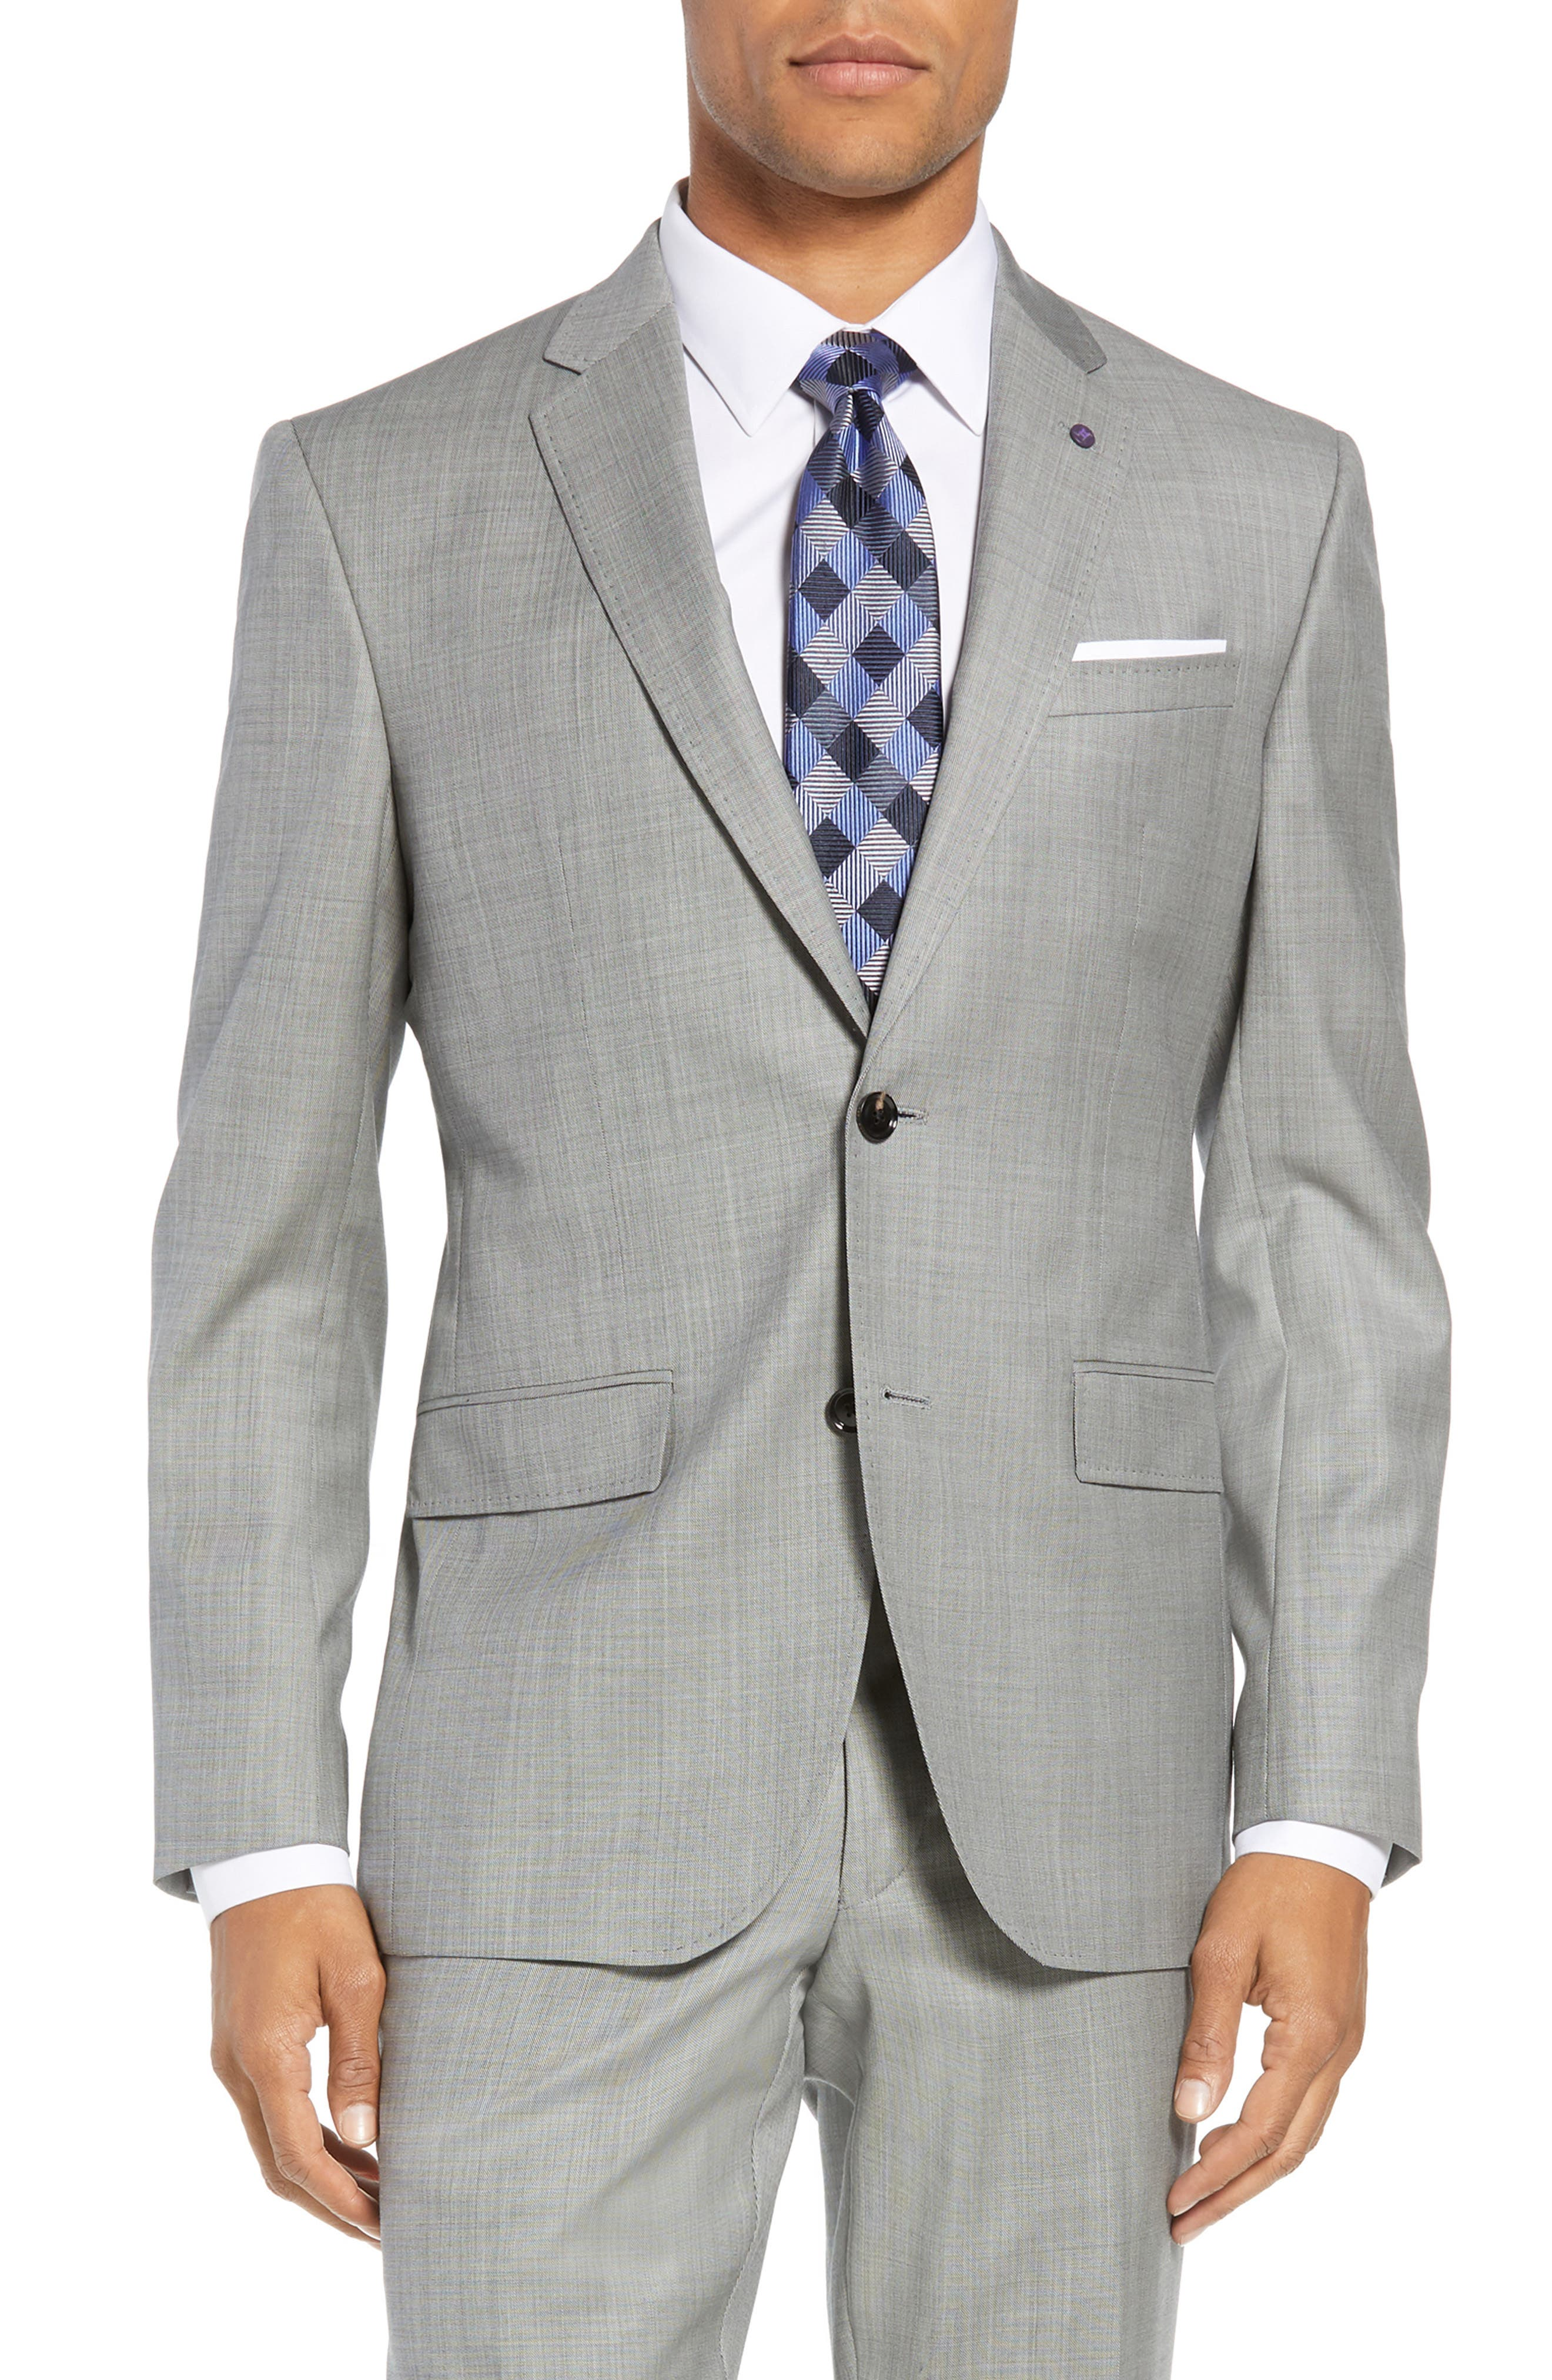 TED BAKER LONDON, Jay Trim Fit Solid Wool Suit, Alternate thumbnail 5, color, LIGHT GREY